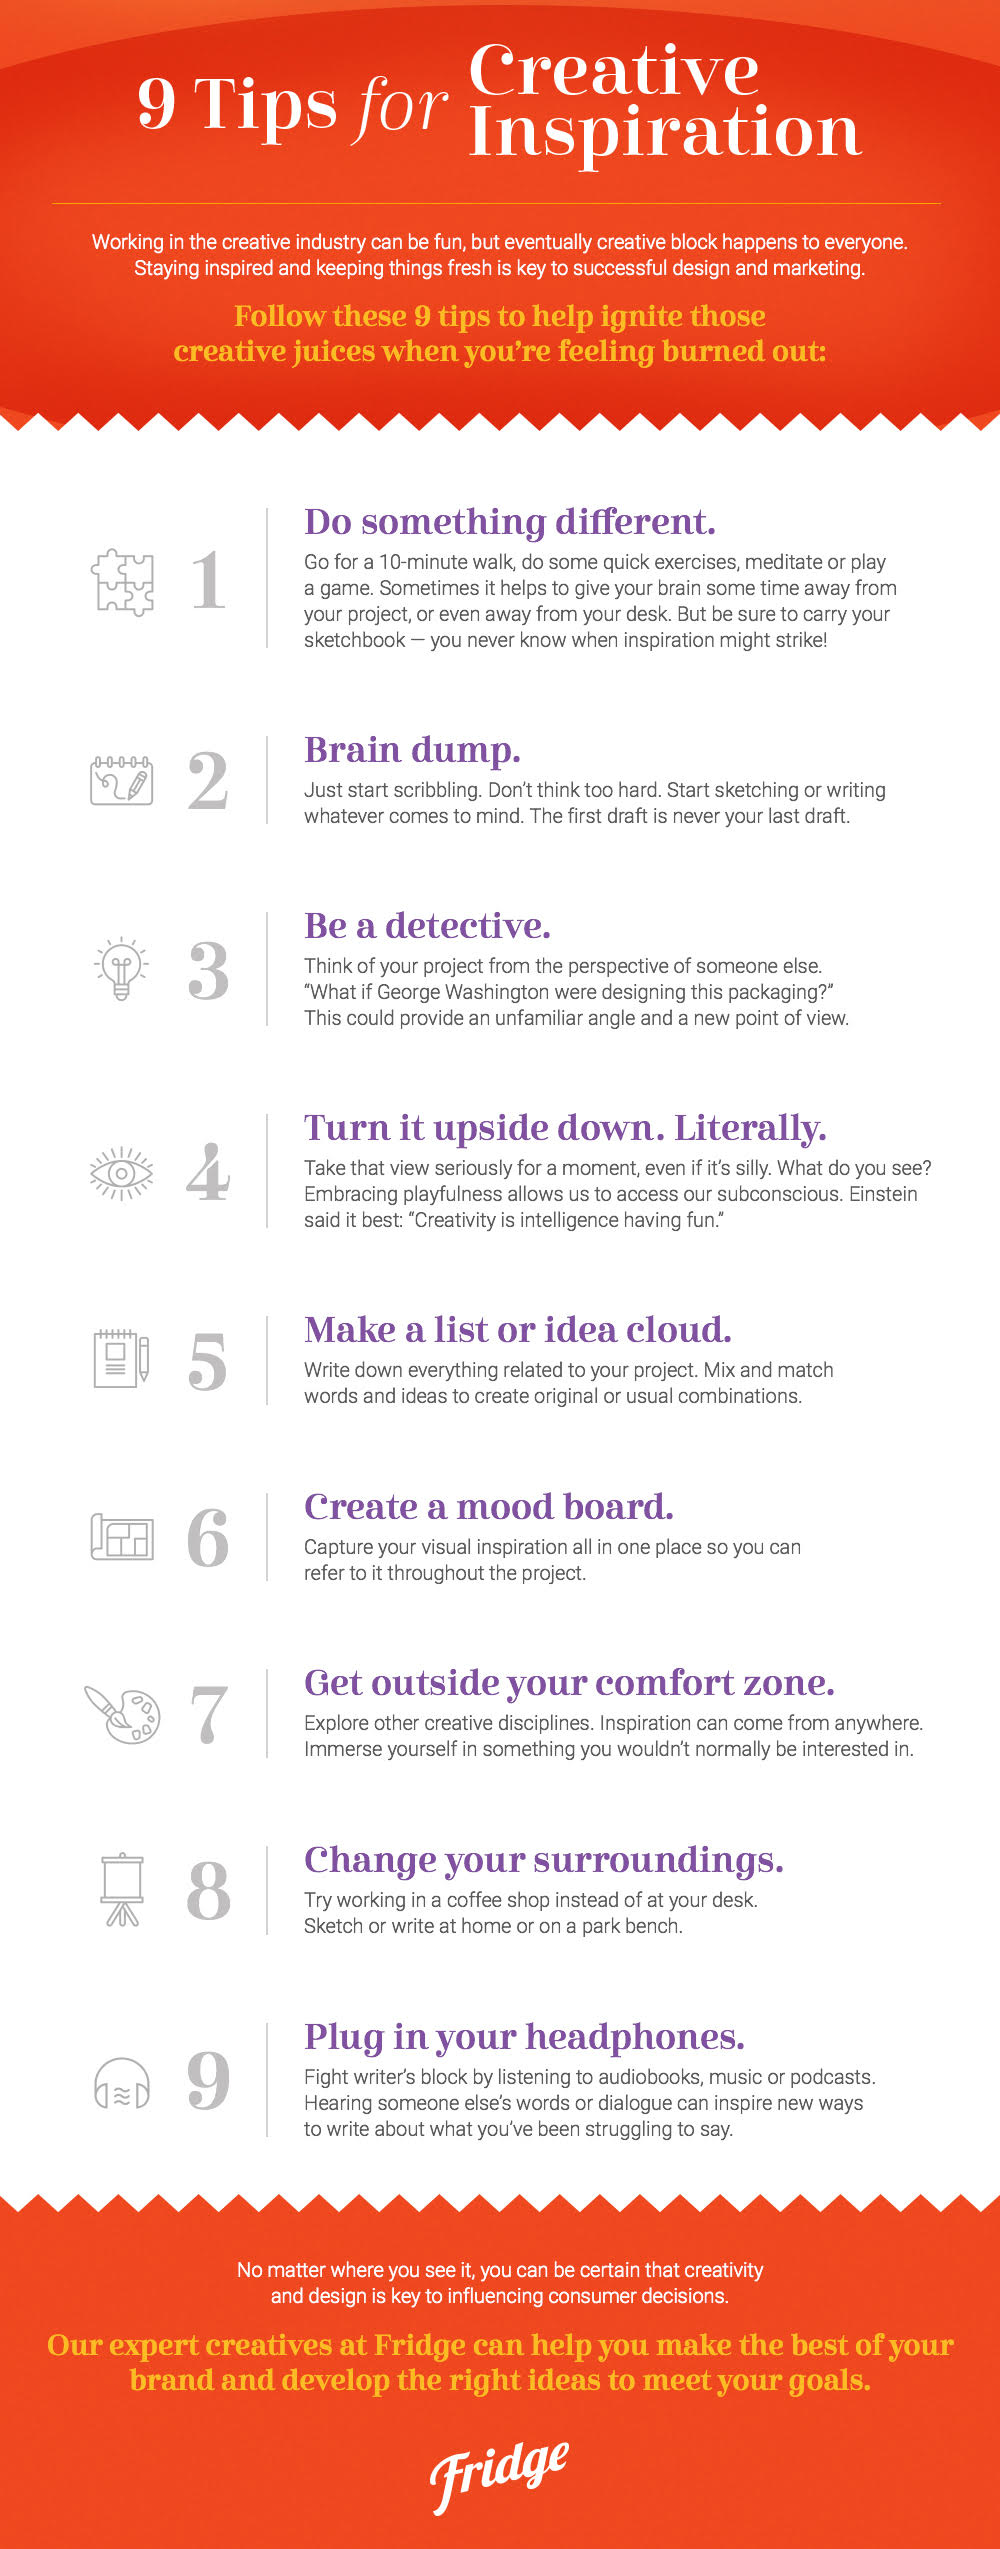 9 Tips for Creative Inspiration from Fridge